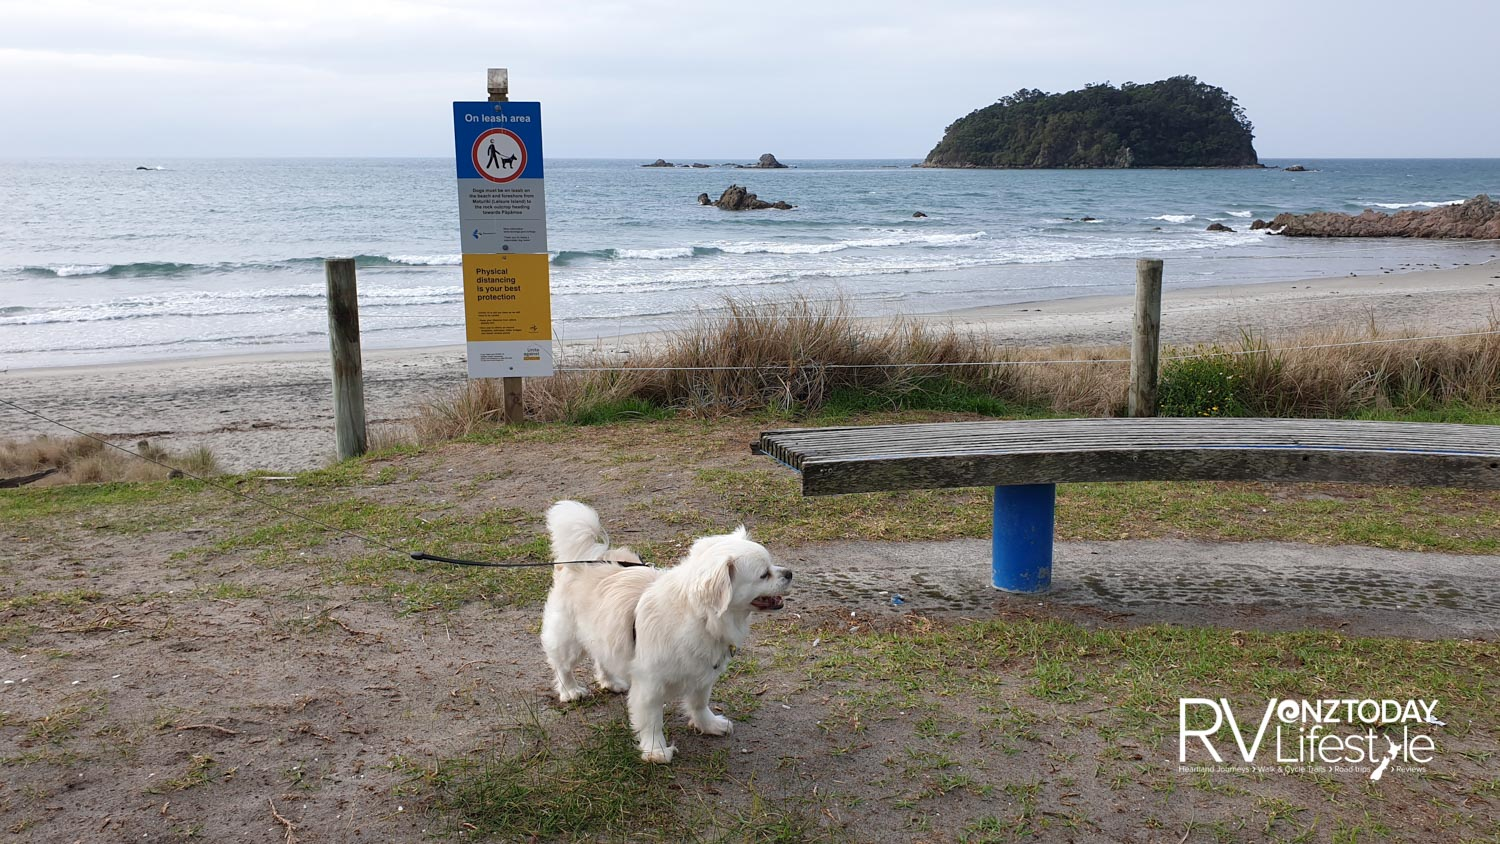 A good walk at Mt Maunganui, mama and papa disappointed we couldn't walk around the mountain or even walk me on the beach in some places, but we found signs that showed the places we could go. My hair is a bit long for sand mama reackons